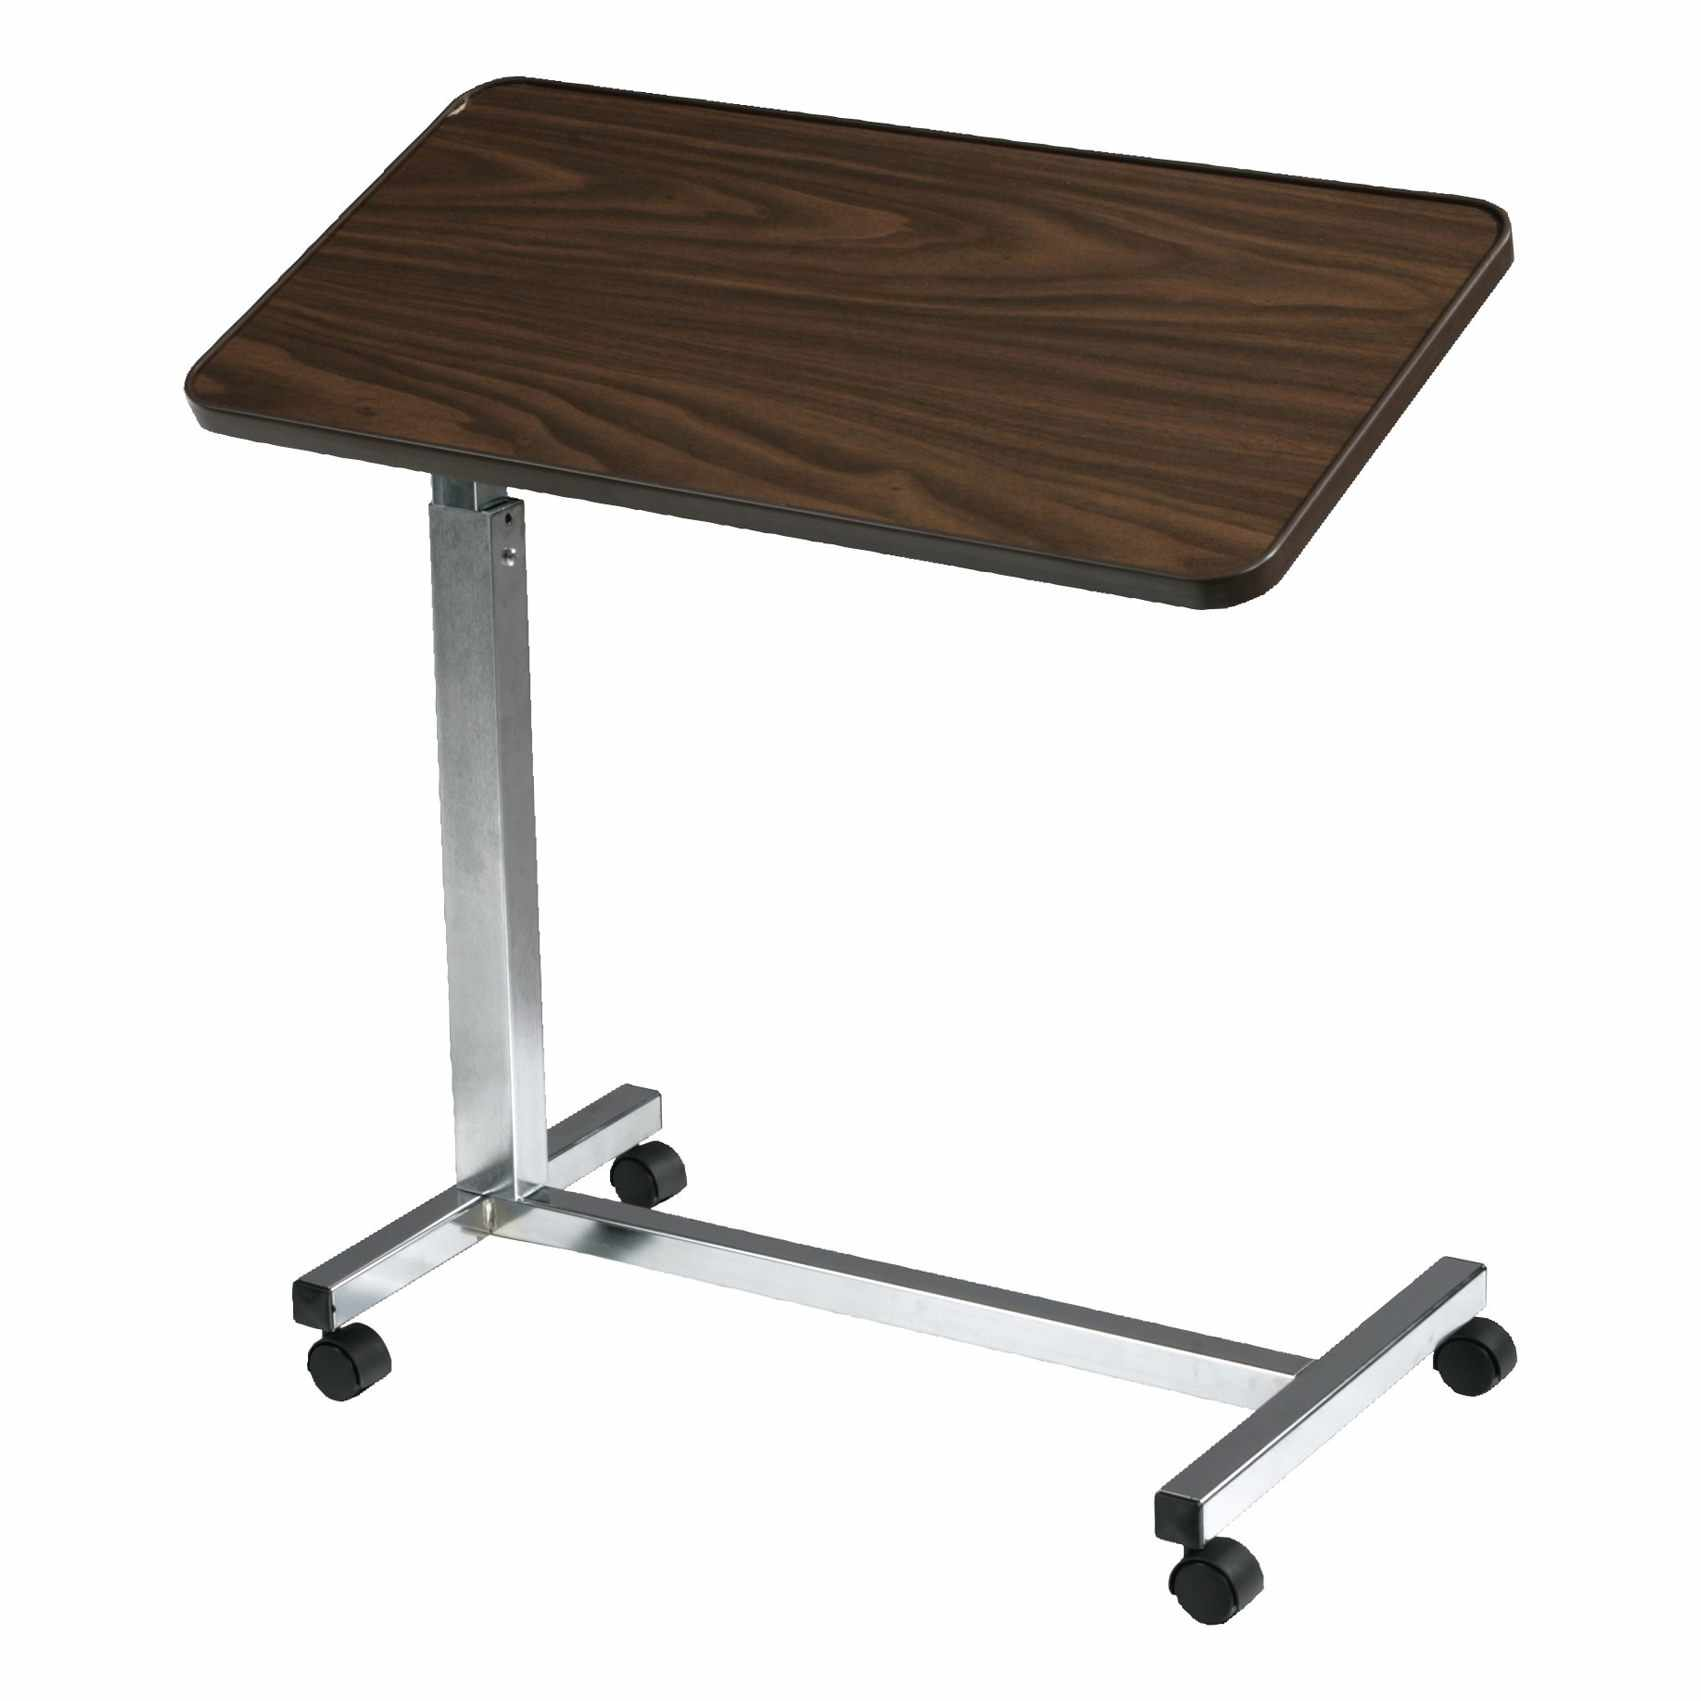 Drive deluxe tilt-top overbed table